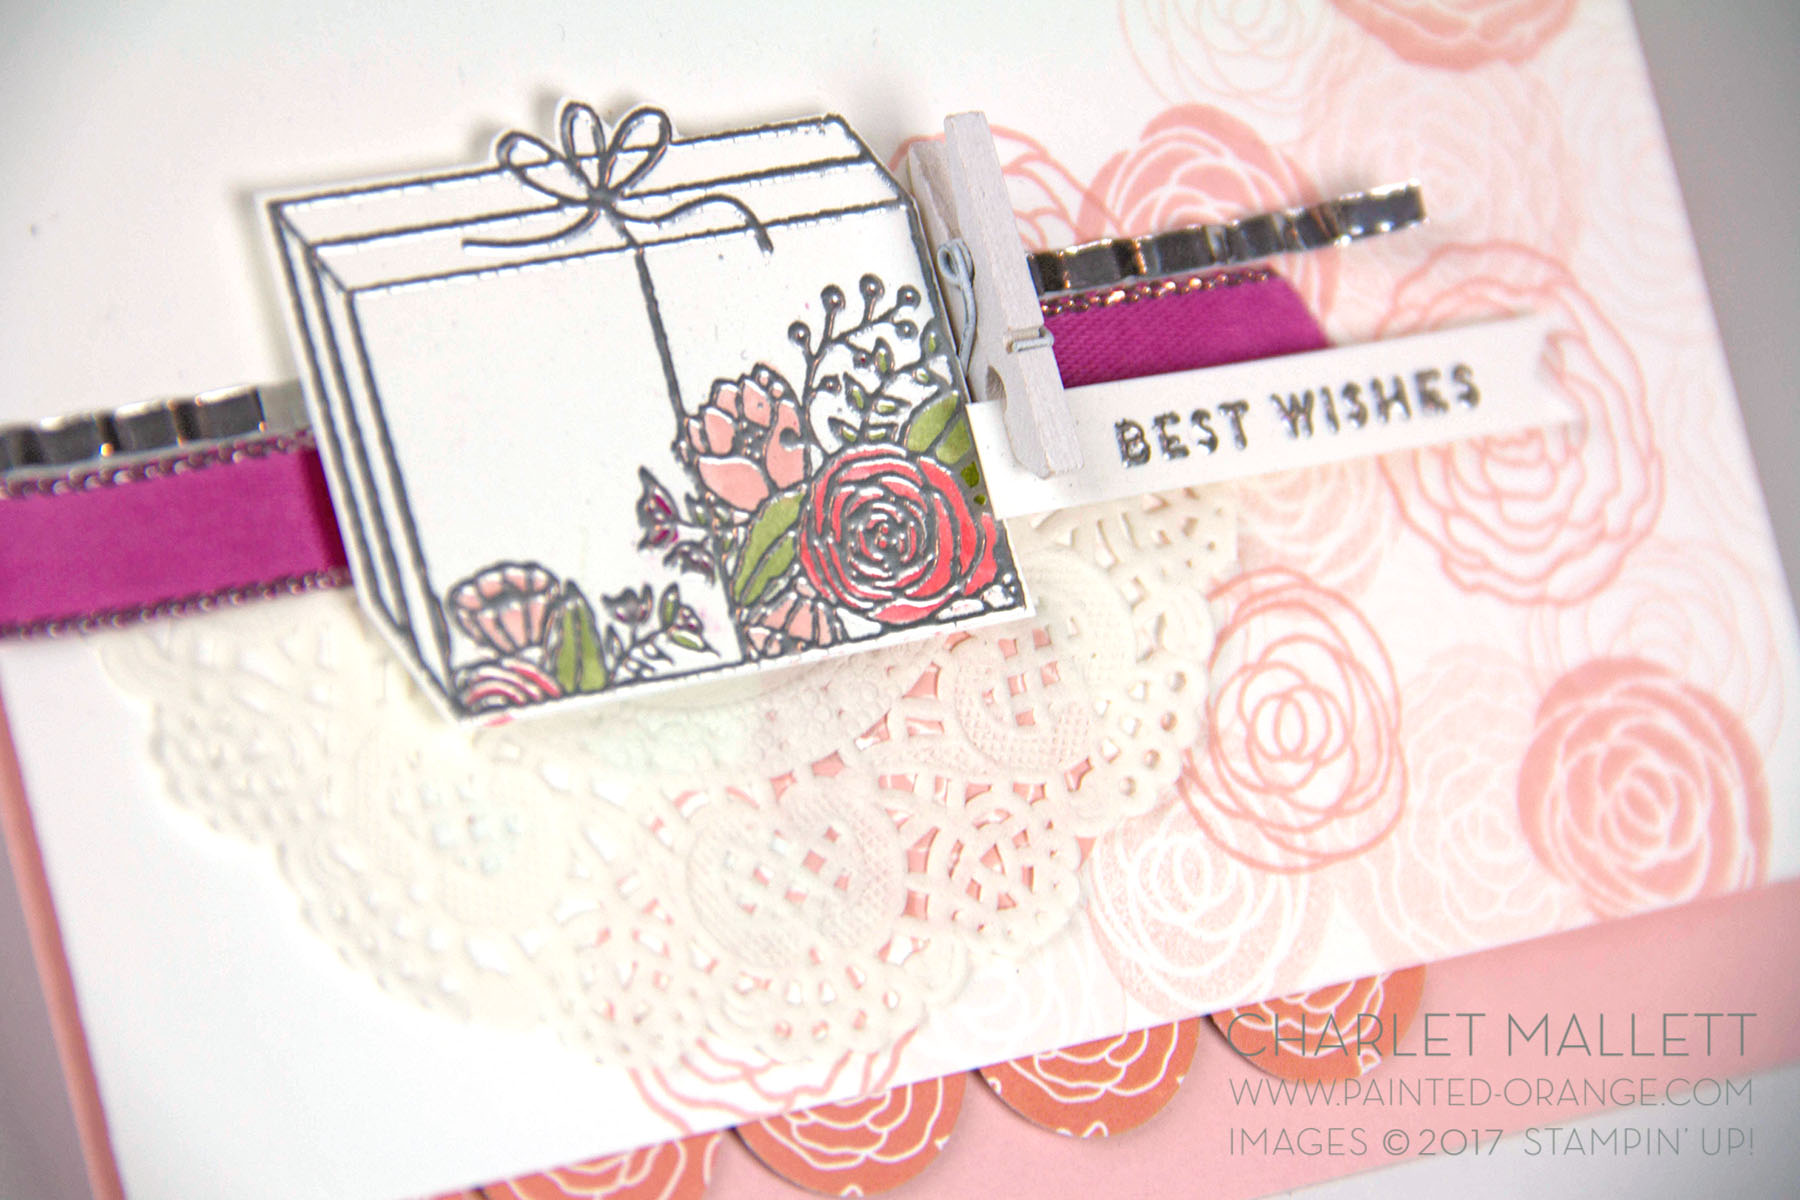 Best Wishes card - Cake Soiree stamp set - Charlet Mallett - Stampin' Up!